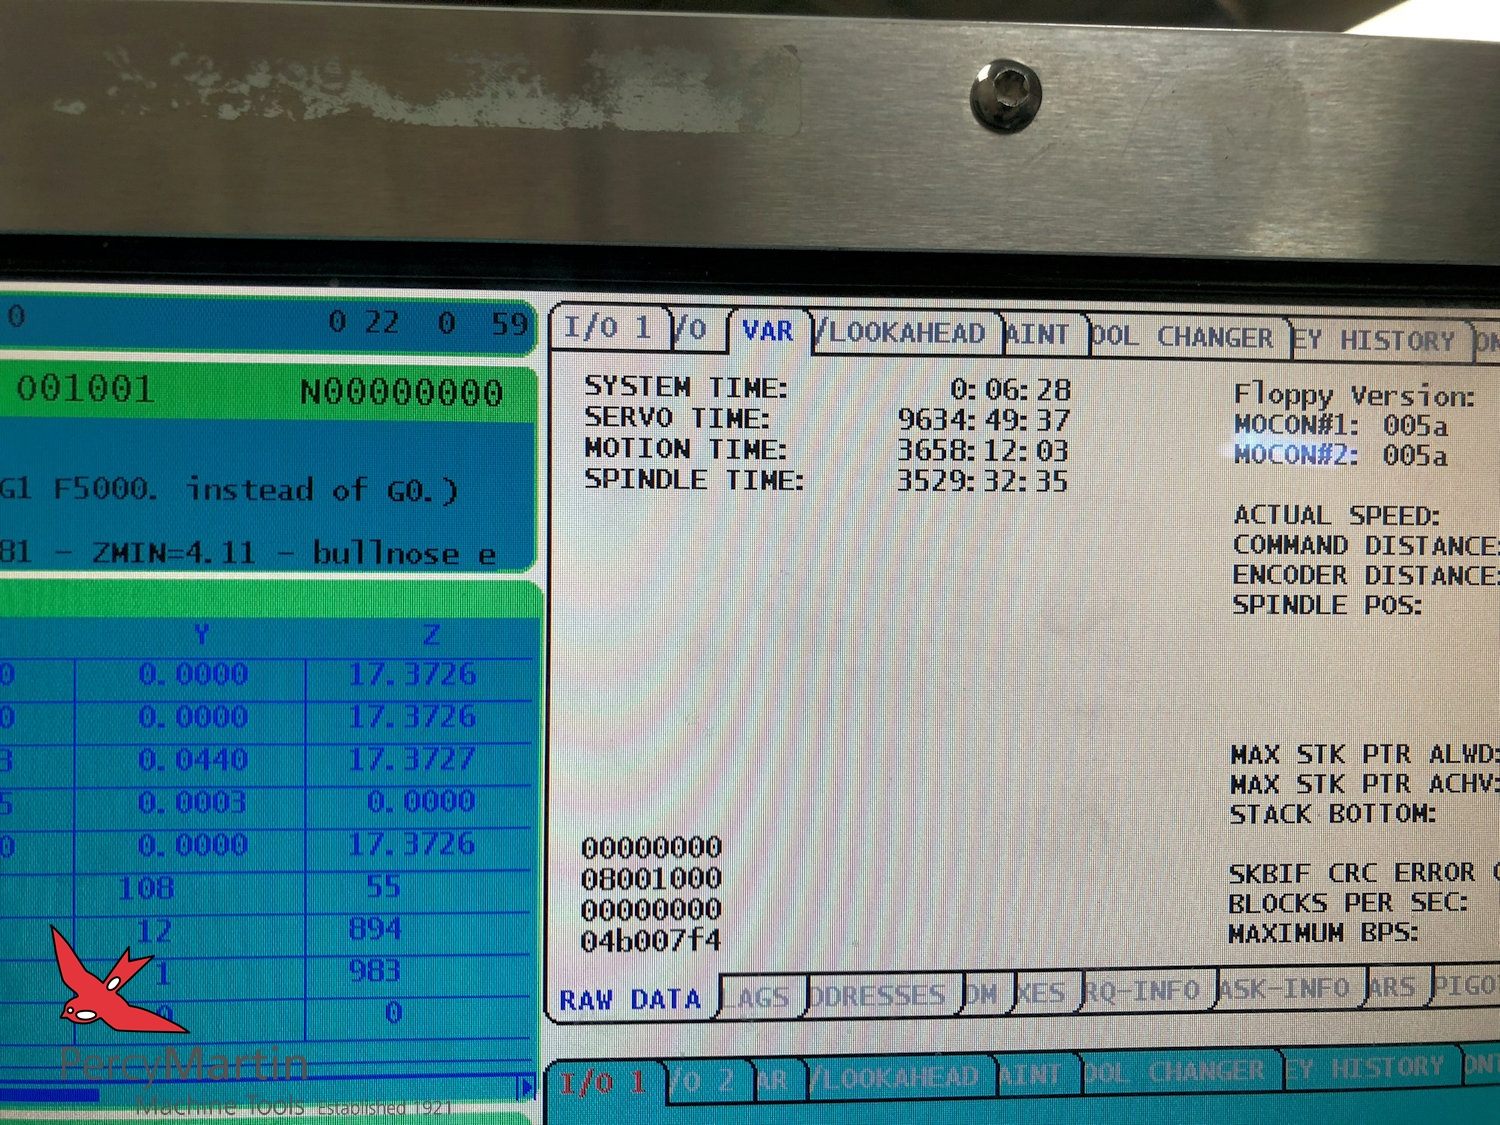 Used Haas Dt 1 2013 Vertical Machining Centres For Sale Percy Martin Encoder Wiring Diagram Download Pdf